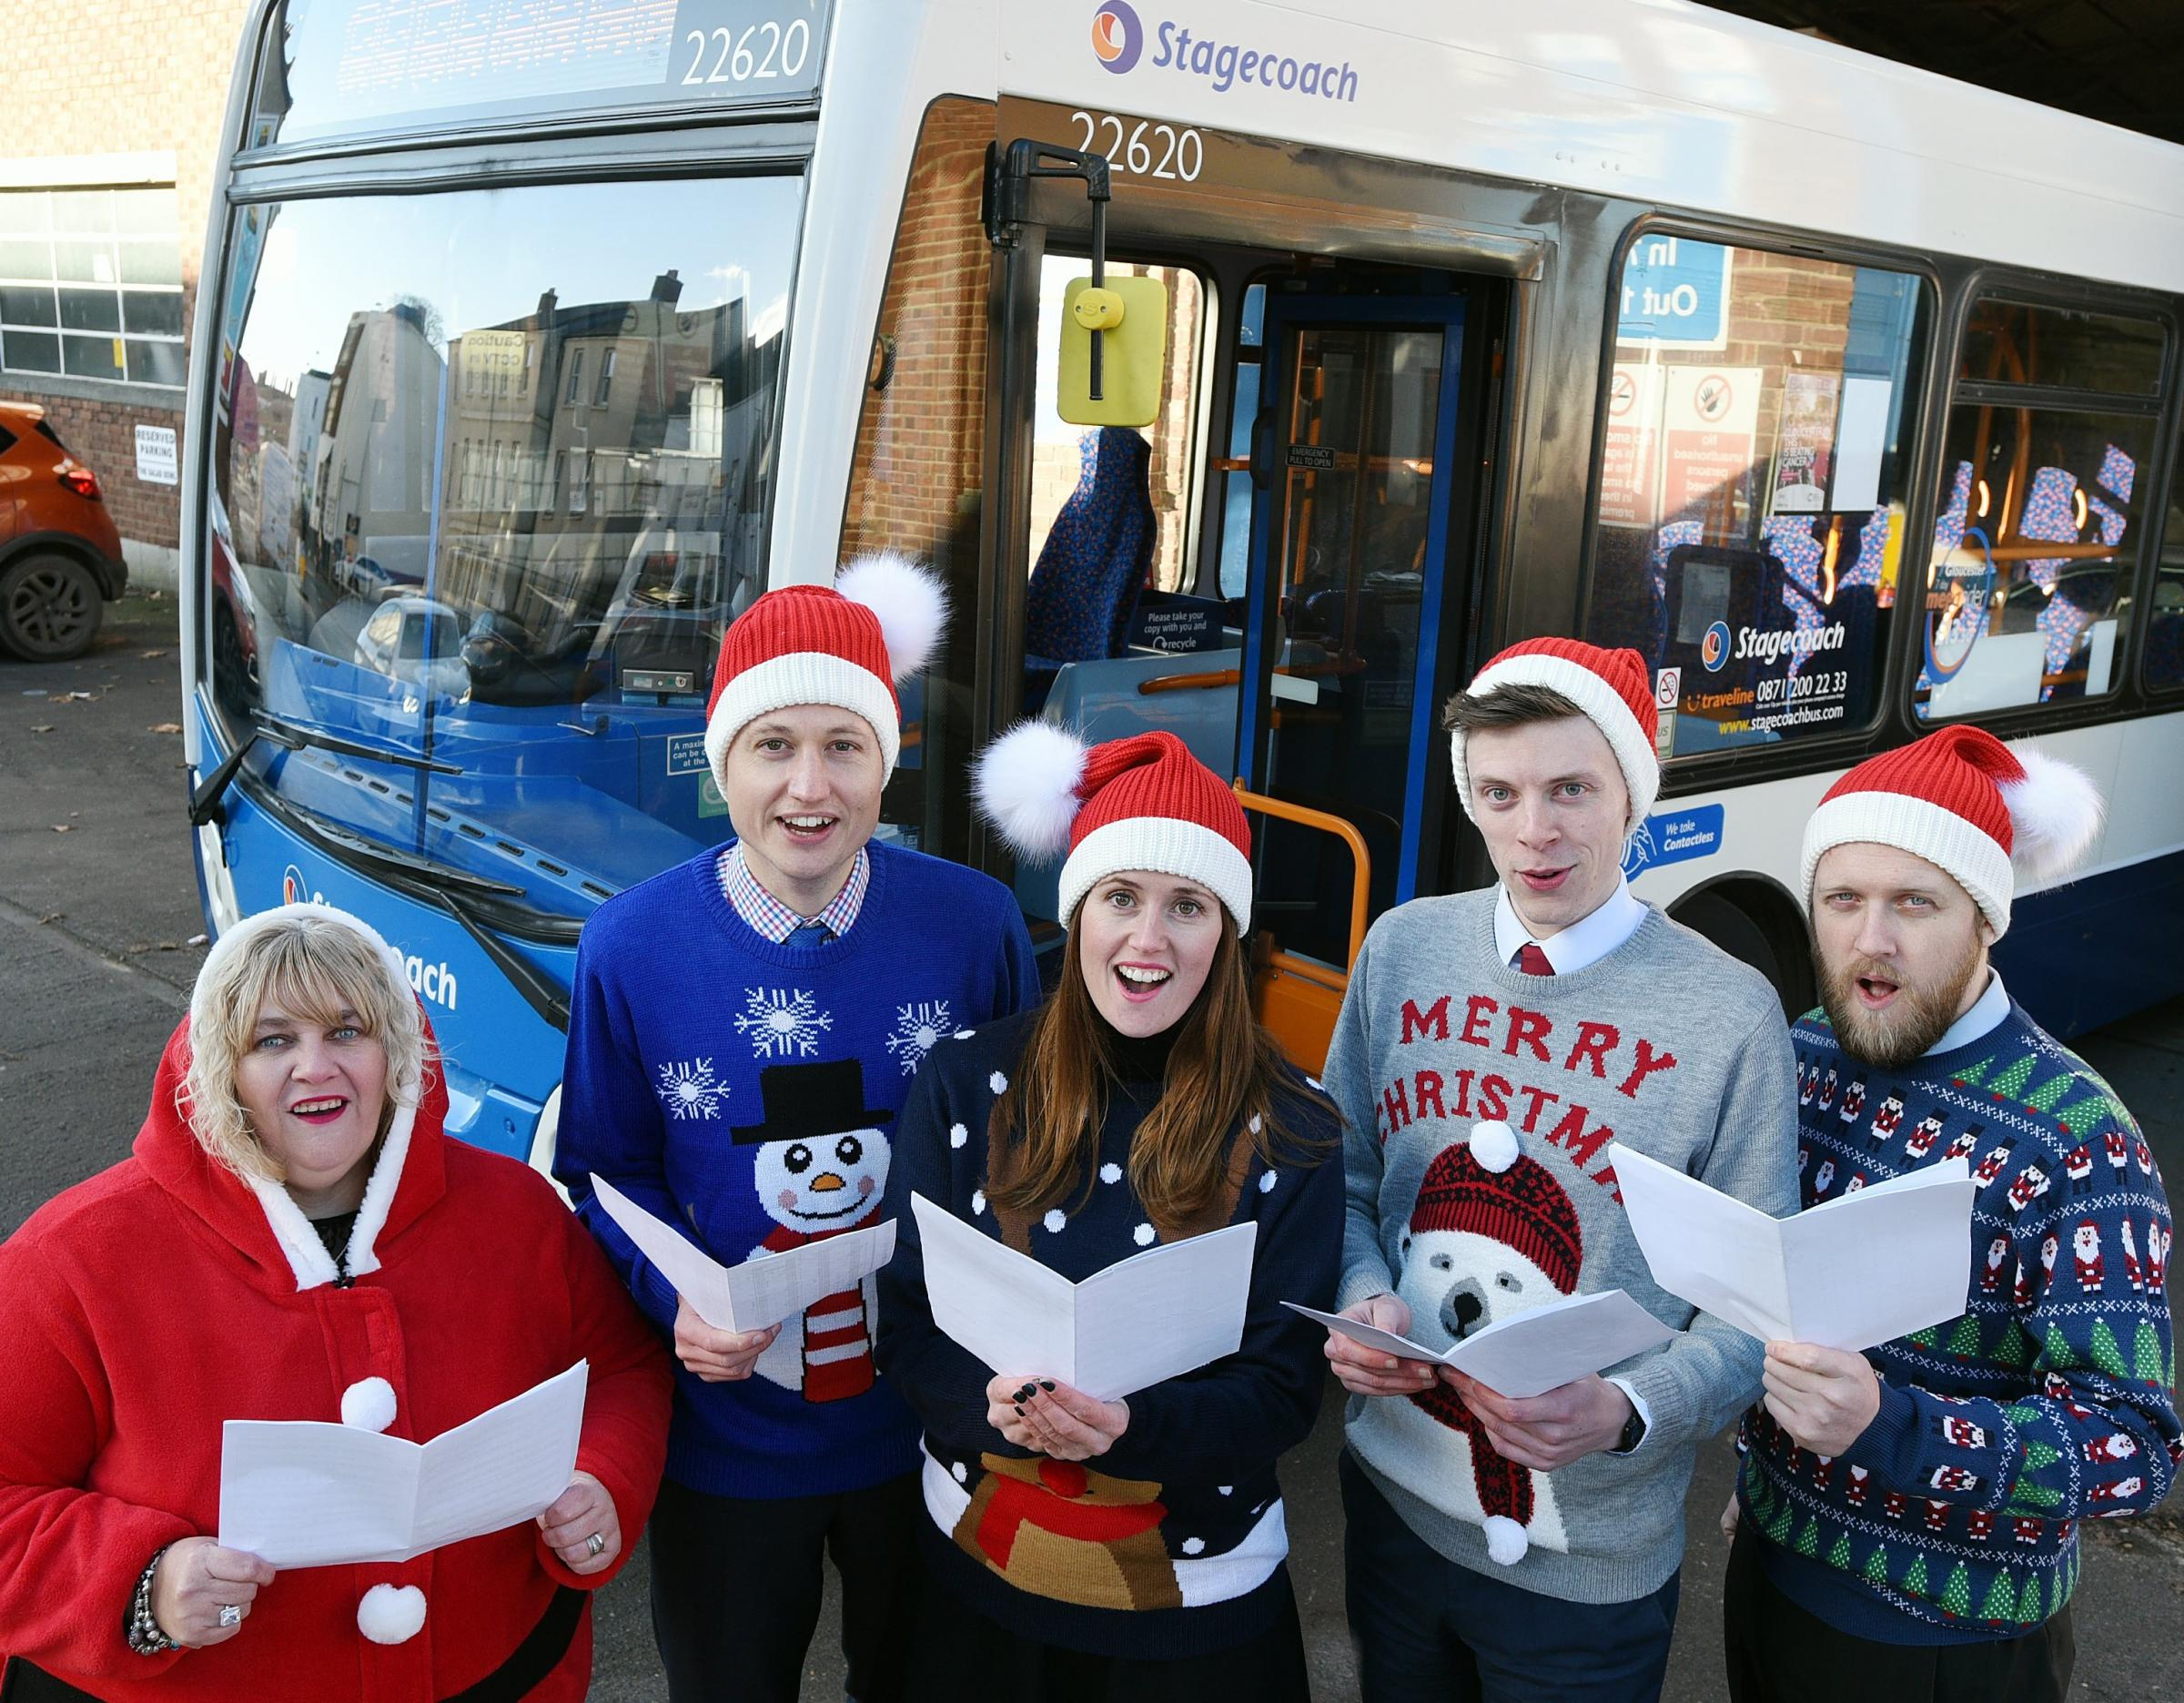 Carol singers from Stagecoach West:  Rupert Cox MD (second from left), Rachel Geliamassi, Operations Director, Vikki Stiles. Customer Services and James Heaney and Mike Porrell, Commercial Officers.